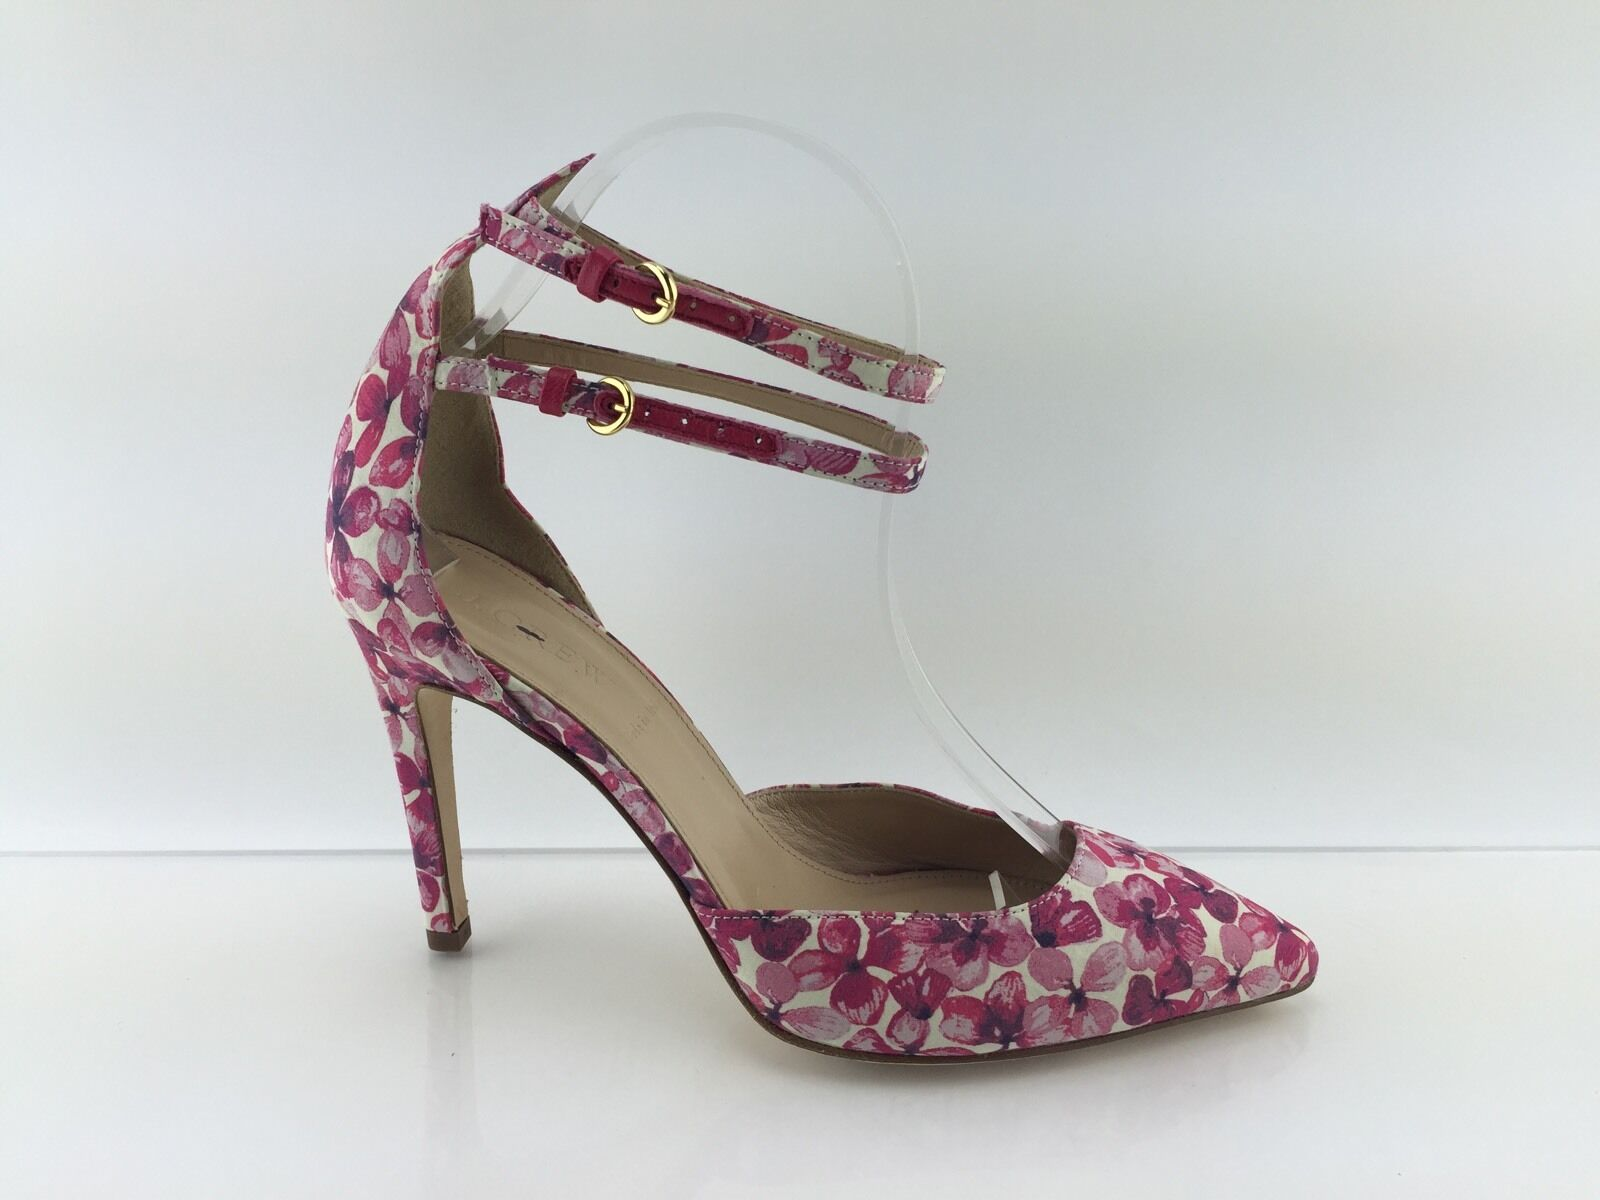 J Crew Women's Pink Multi color Heels 7